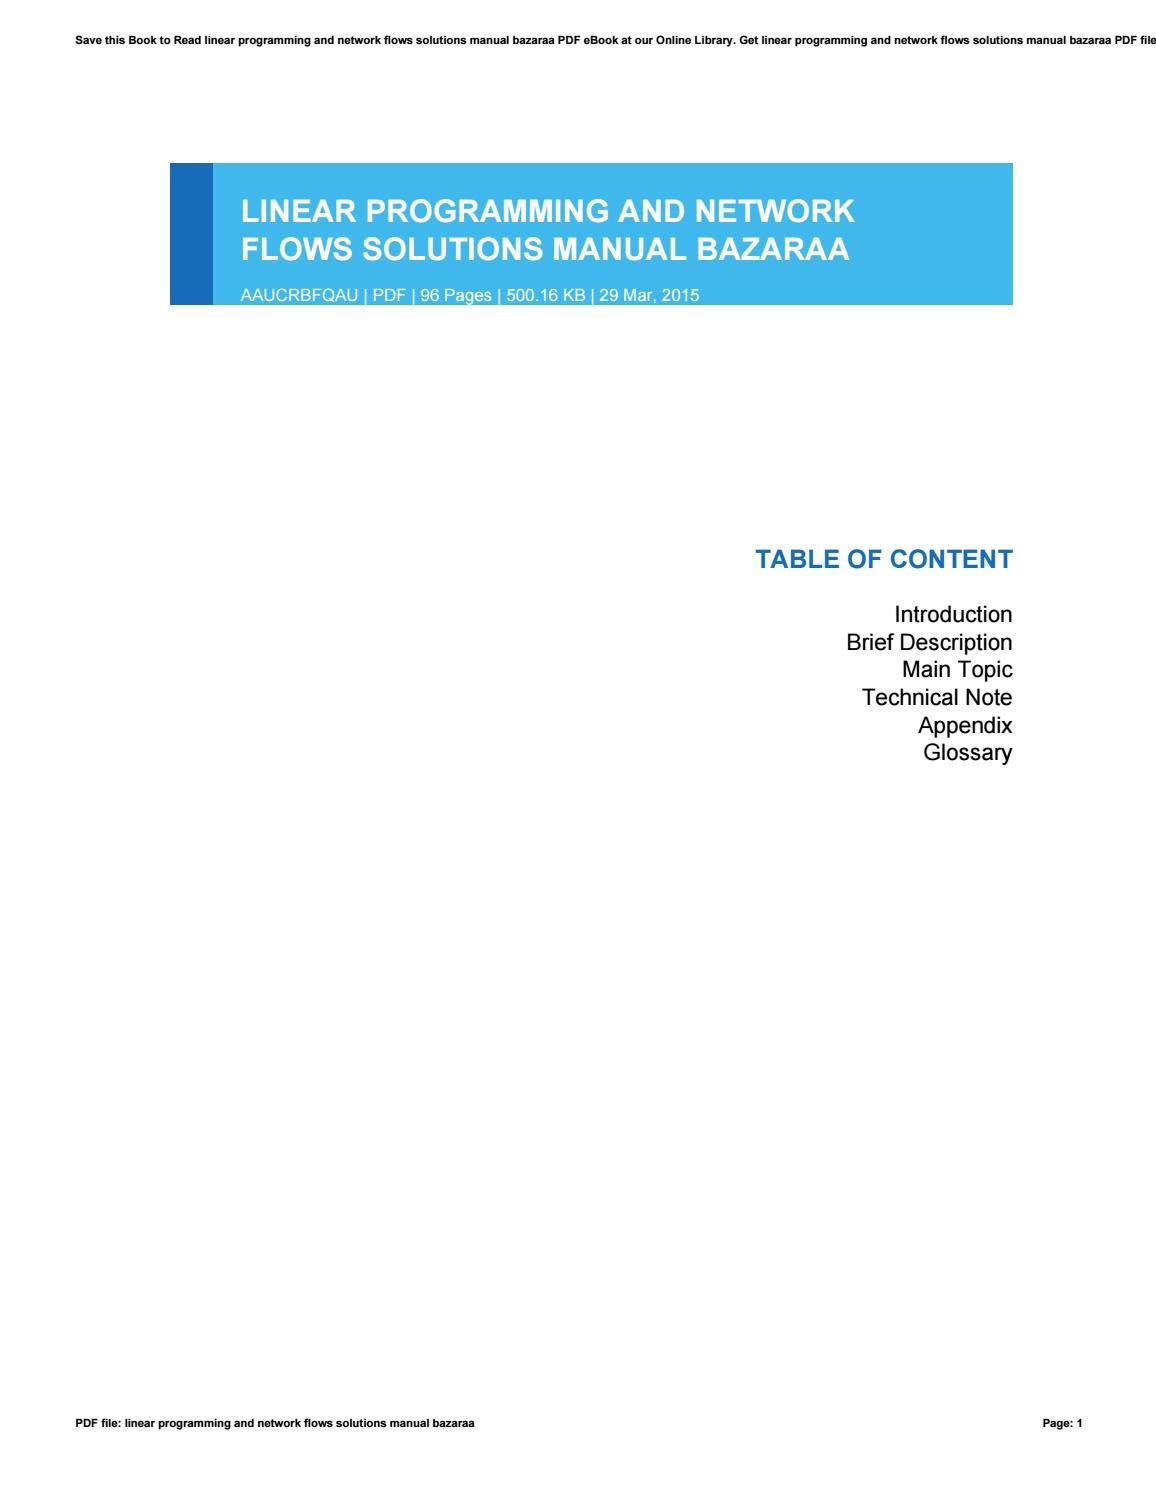 Linear programming and network flows solutions manual bazaraa by Carol -  issuu